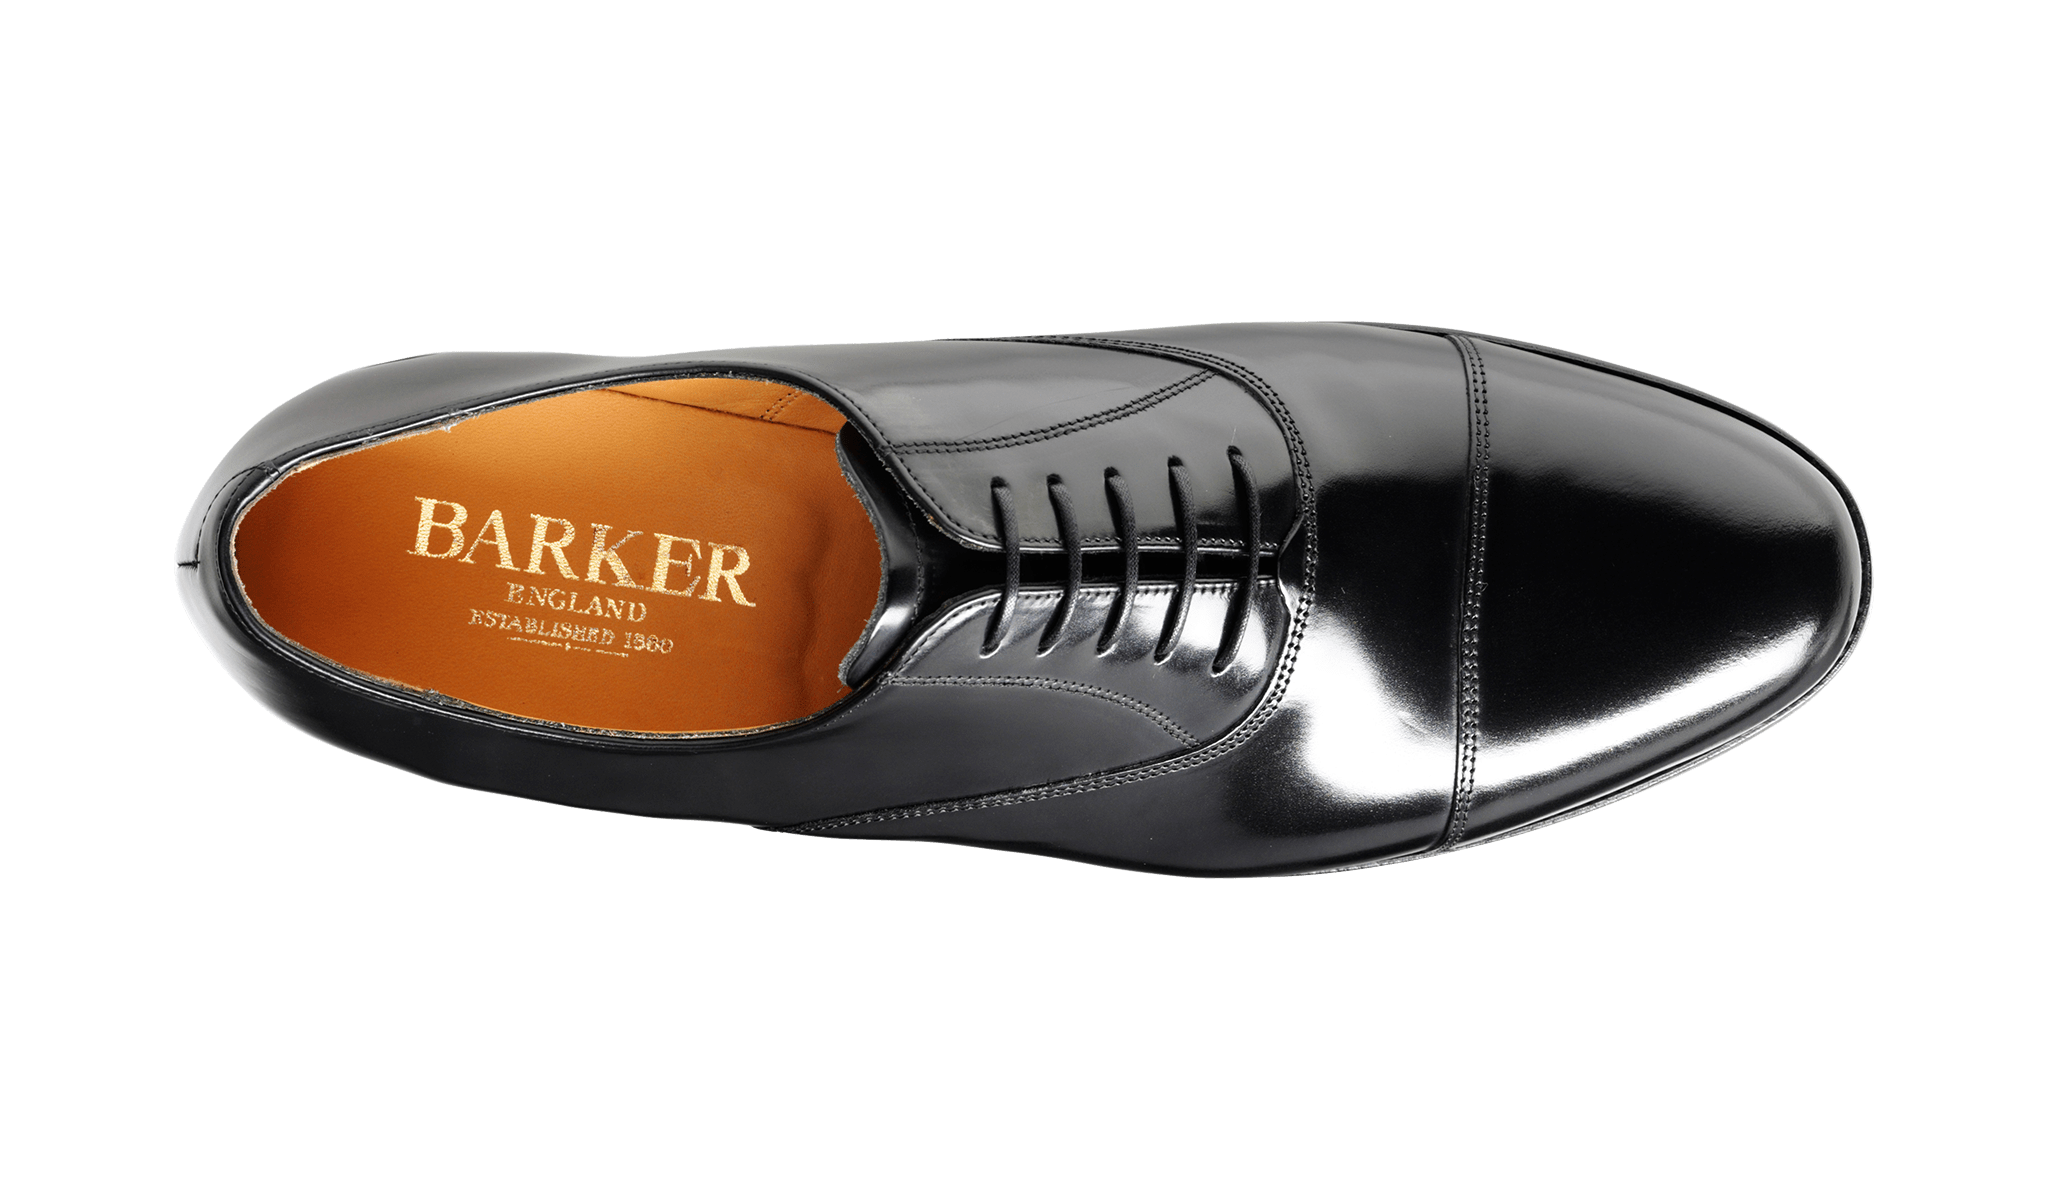 Barker Men's Arnold Leather Oxford Shoes 6644/35 - British Shoe Company